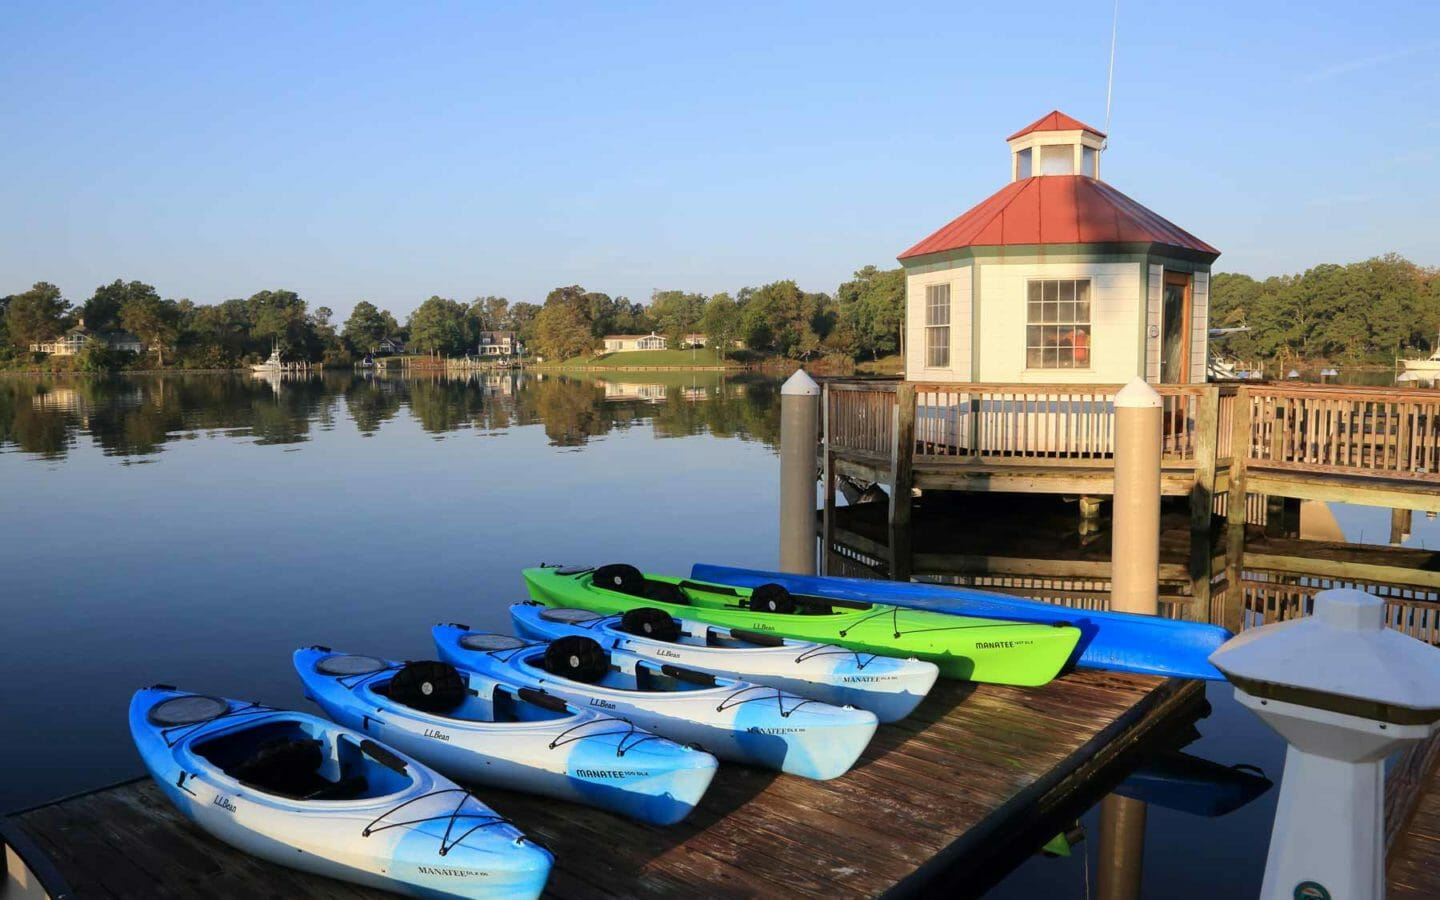 multicoloured kayaks on a dock at the water